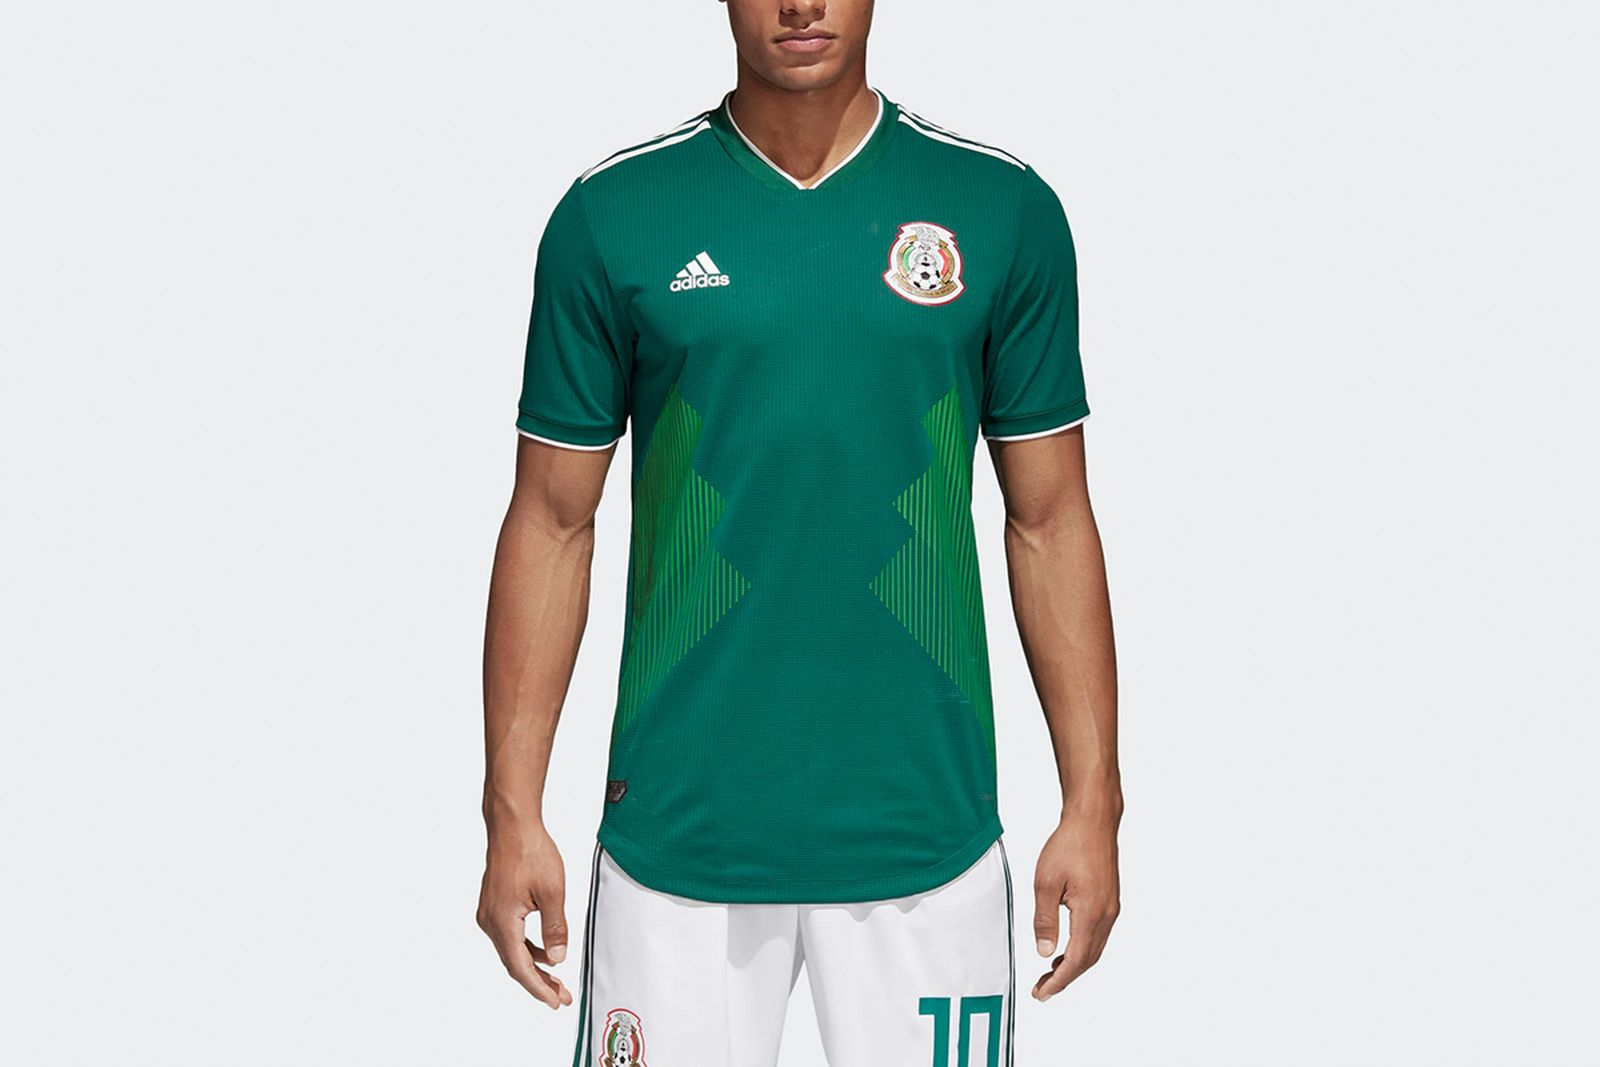 Mexico Home Authentic Jersey Green BQ4703 21 model 2018 FIFA World Cup Adidas